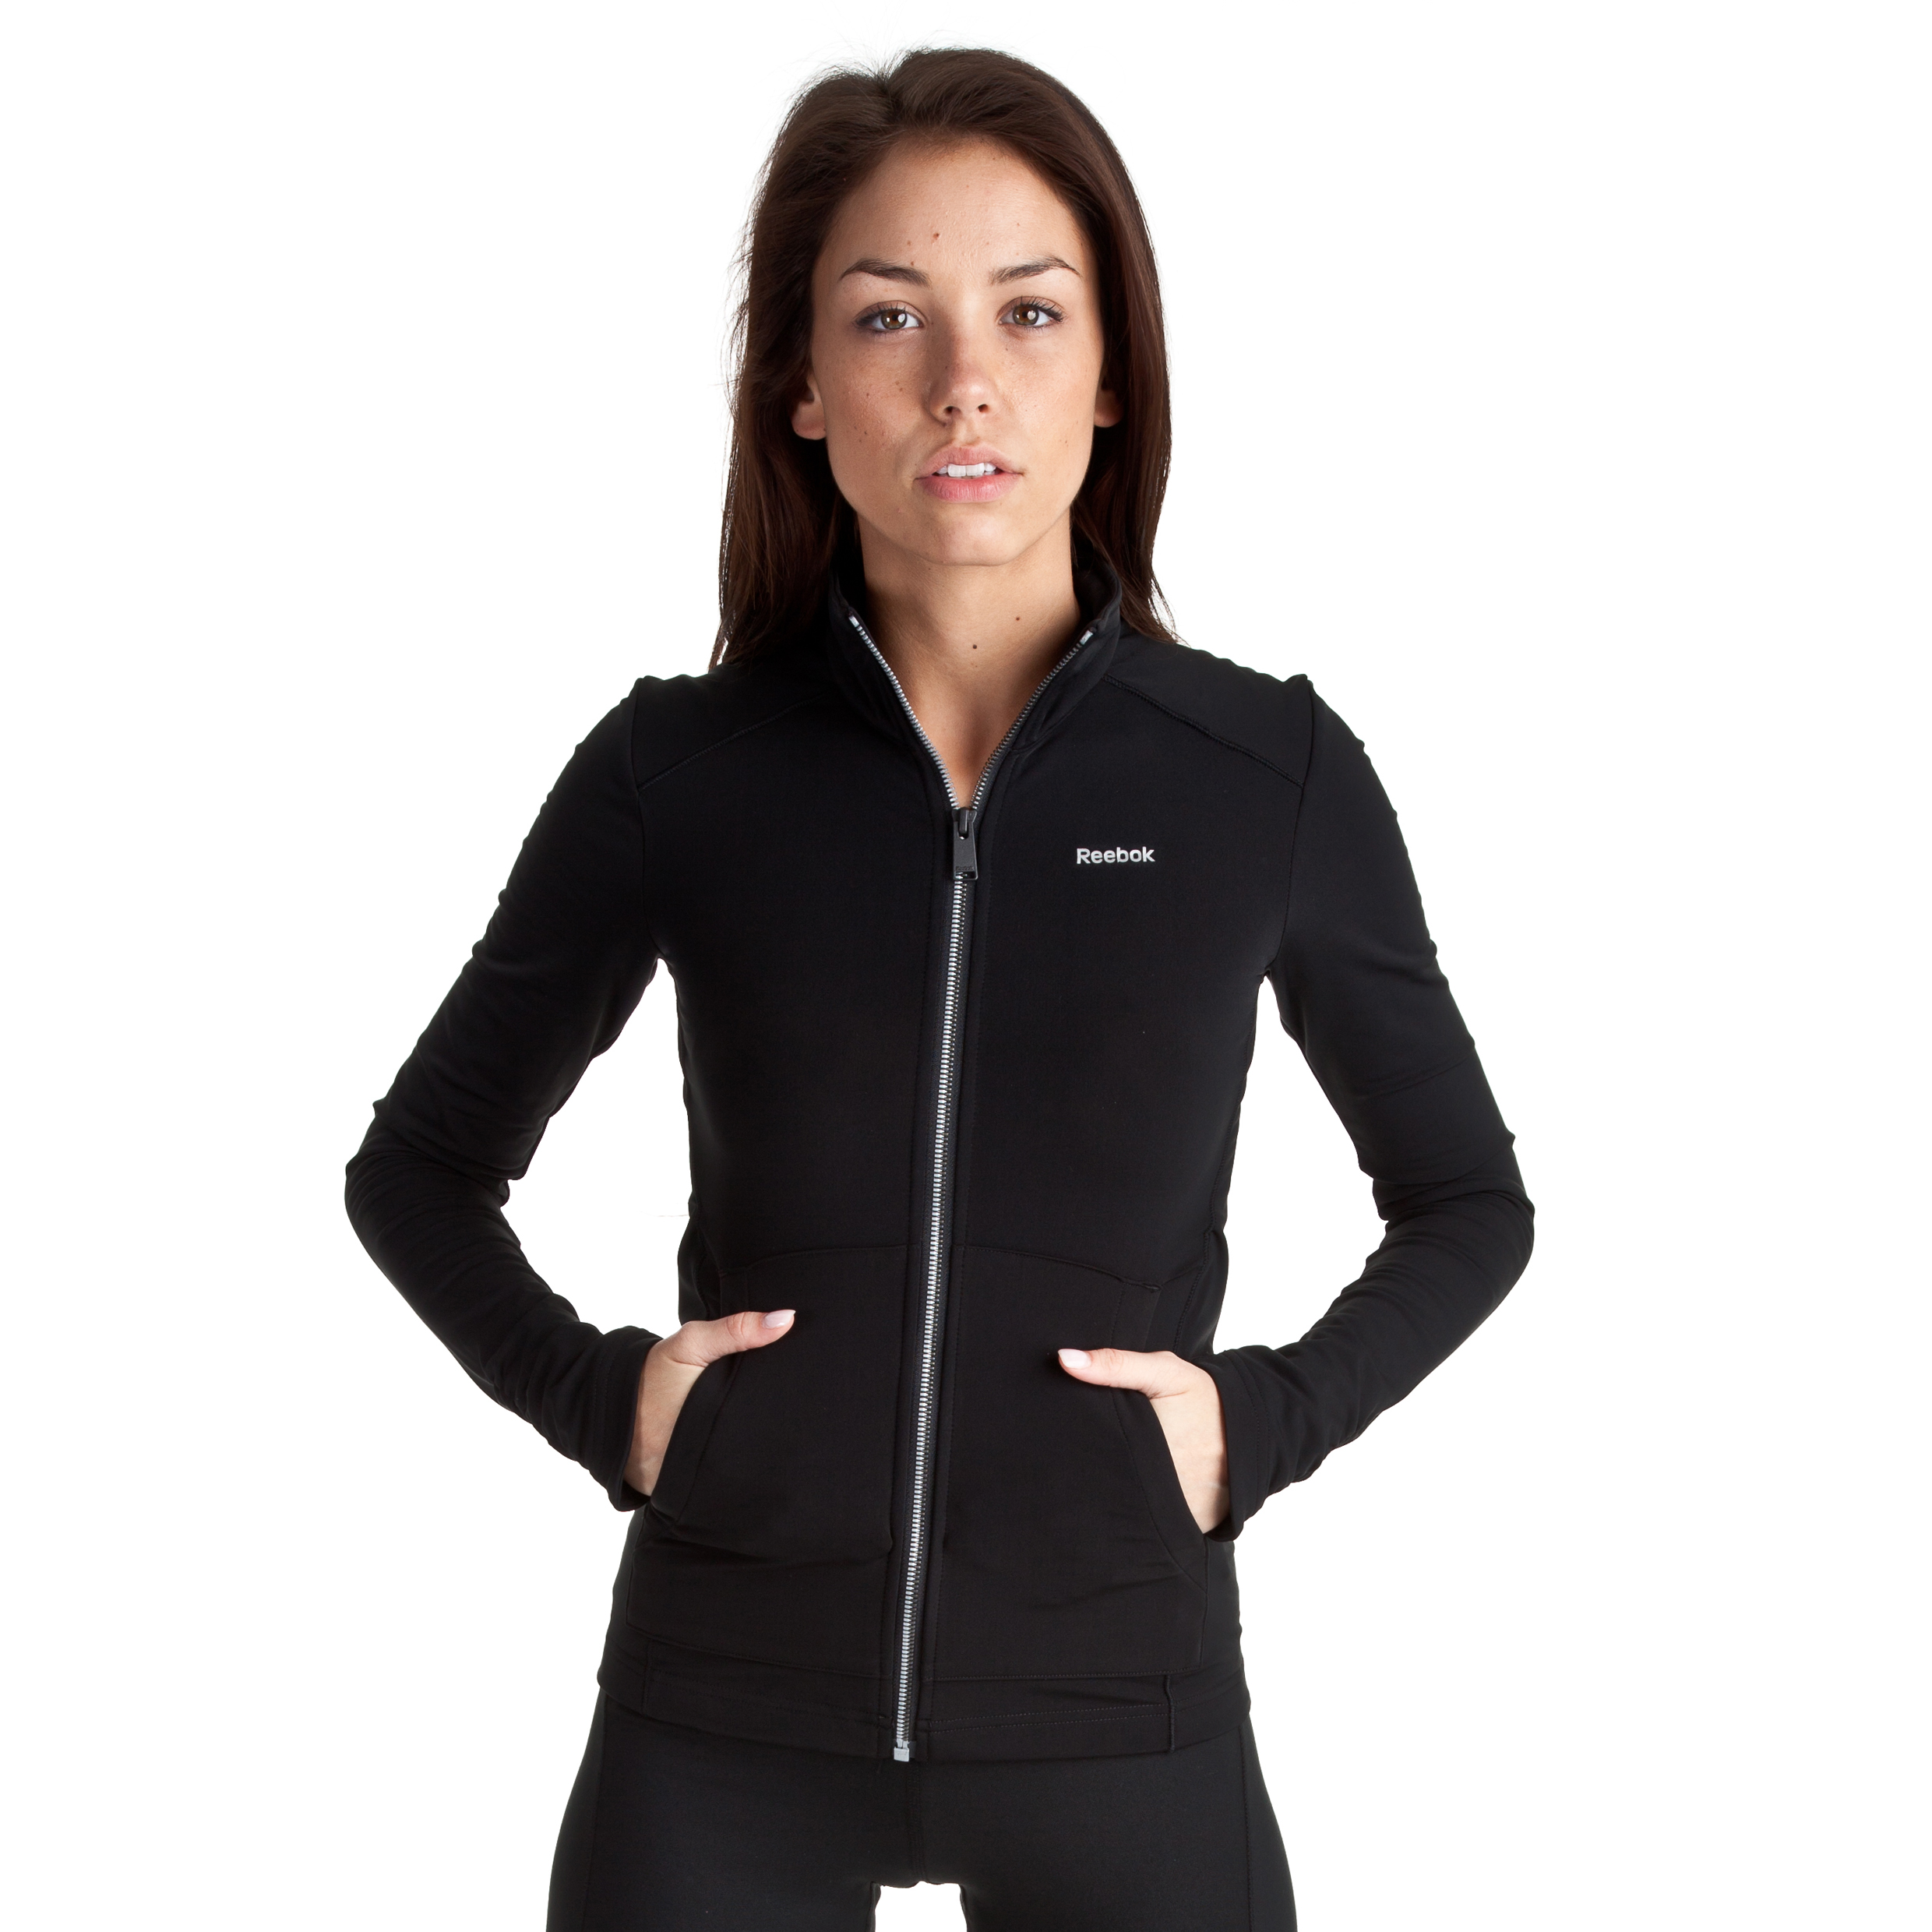 Reebok EasyTone Jacket - Black - Women